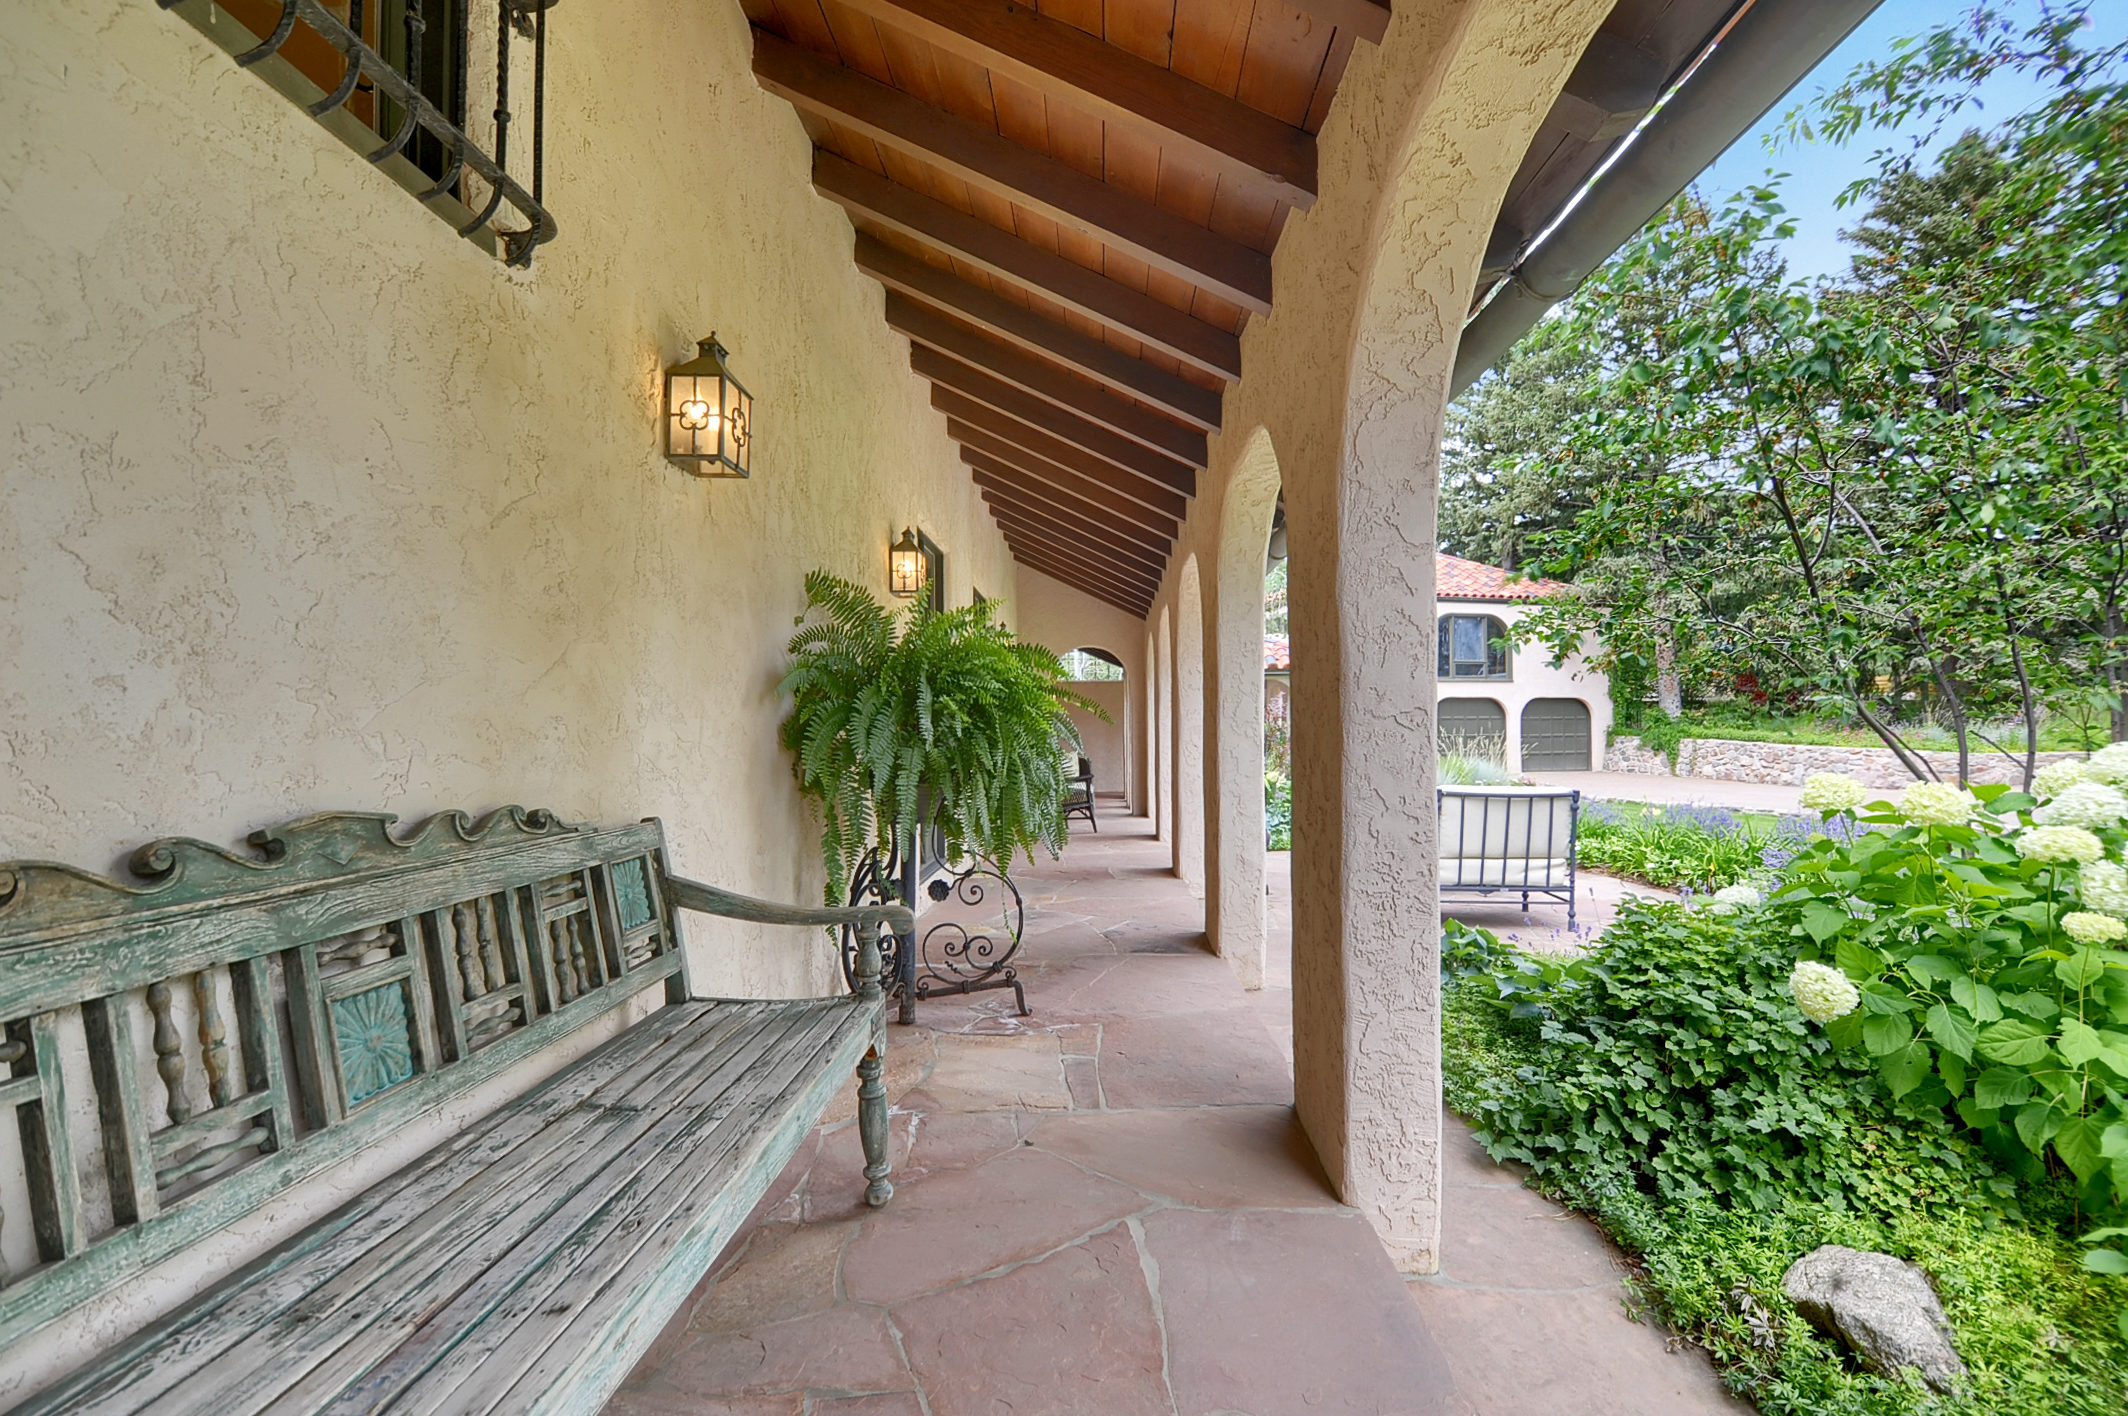 22 - Covered front porch_walkway.jpg